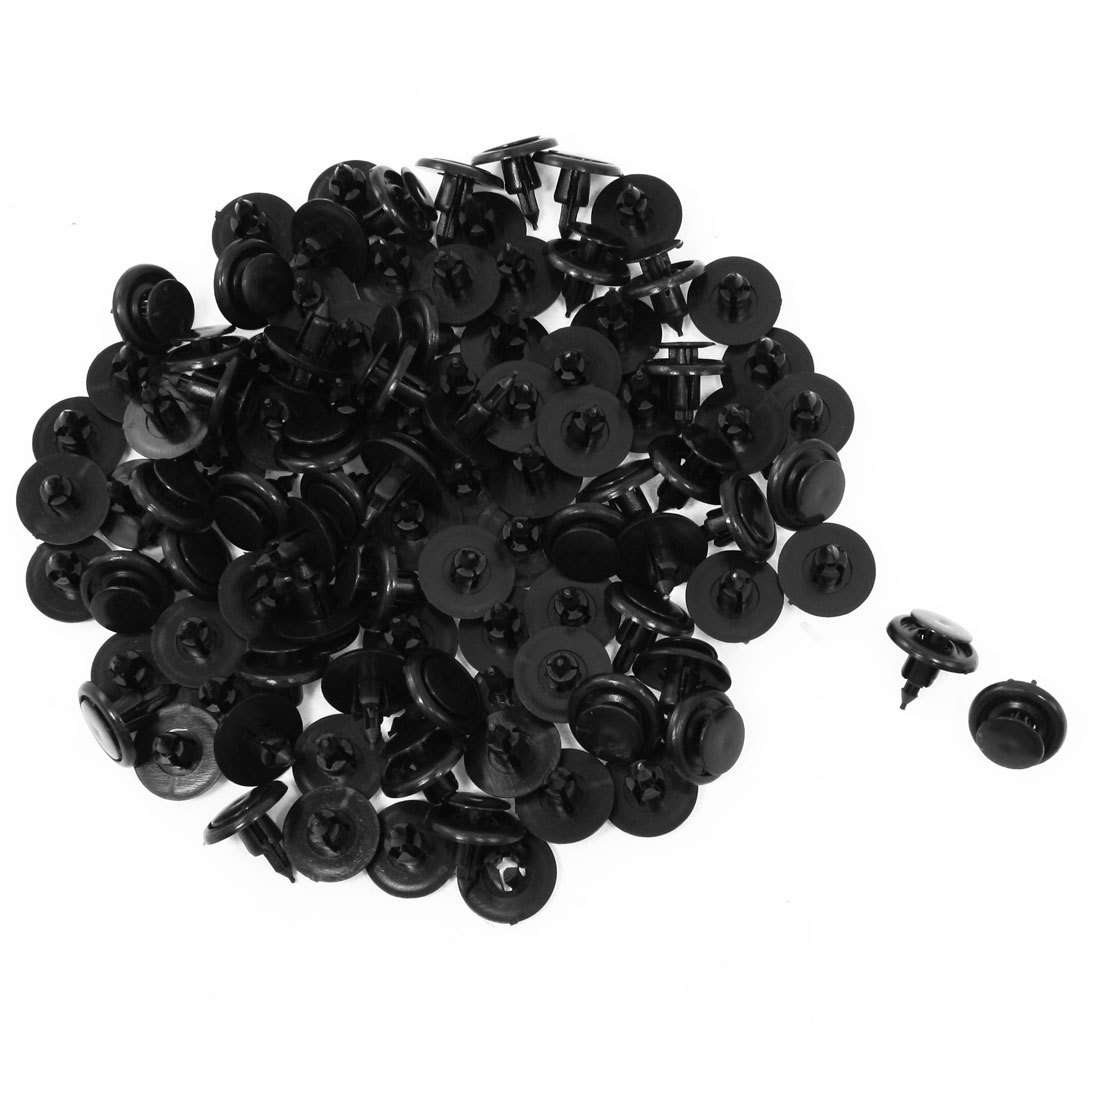 100 Pcs Auto Car Bumper Fender 7mm Hole Push Plastic Rivets Clips Black